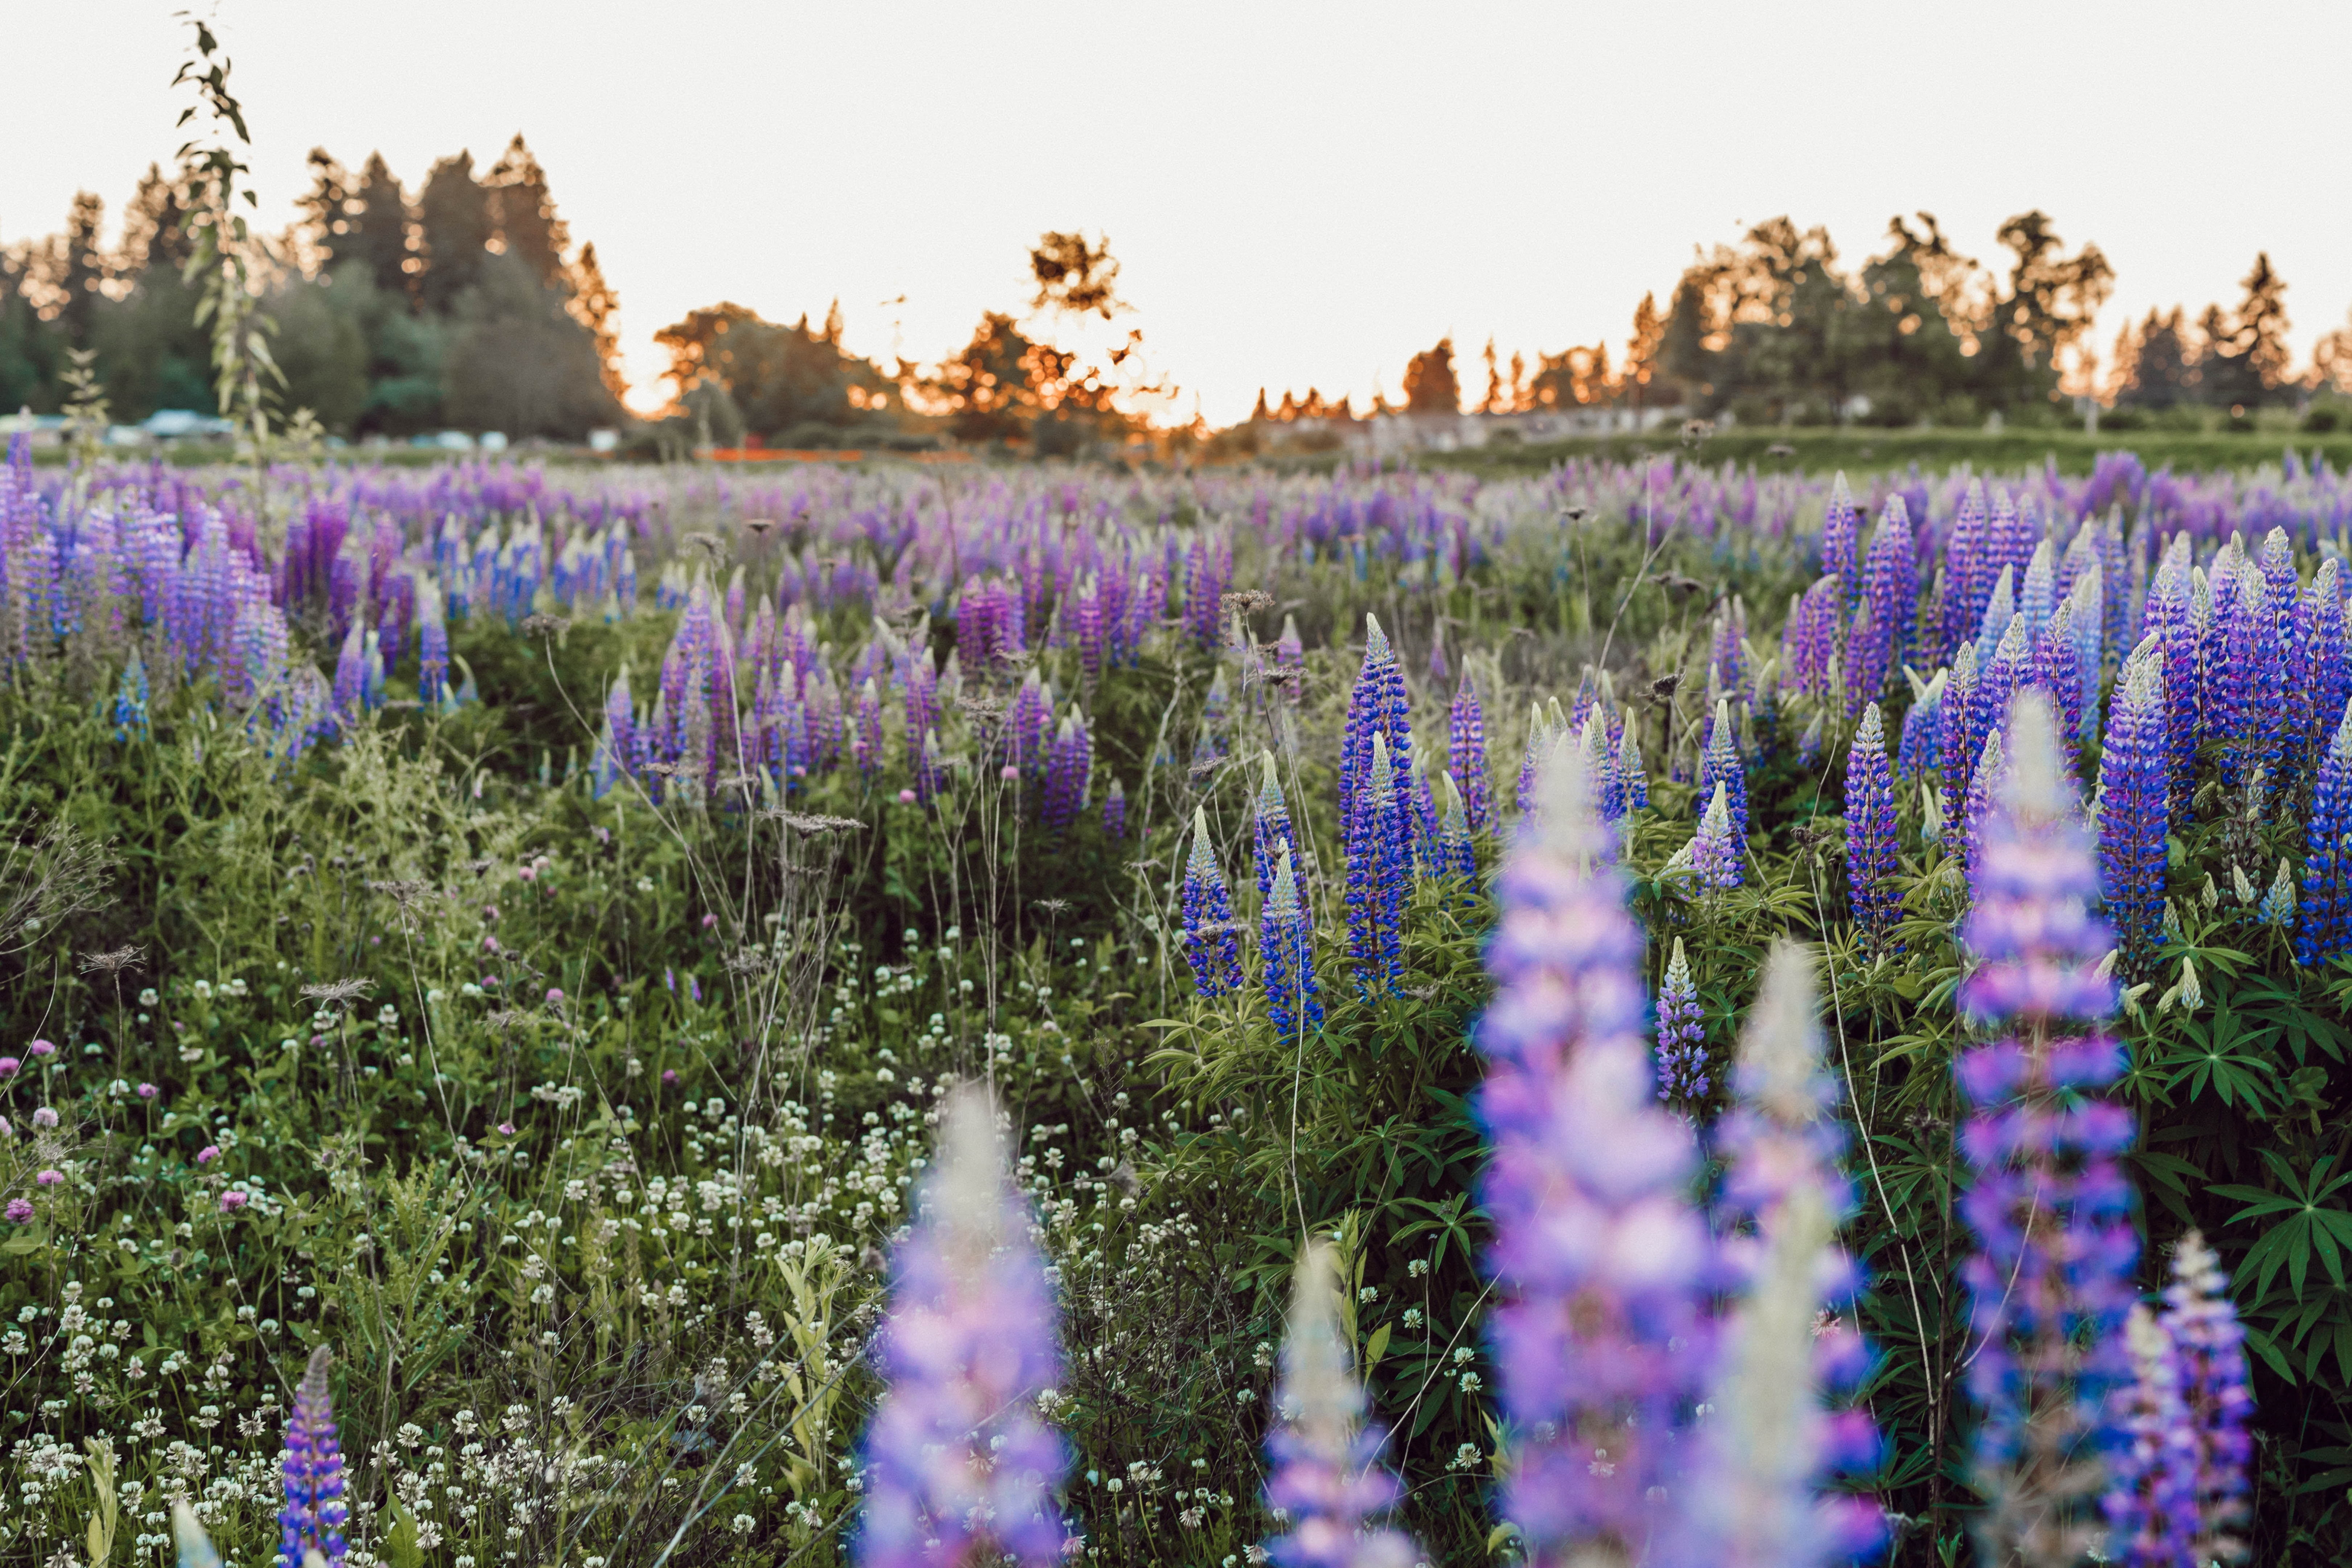 purple lavender meadow during daytime